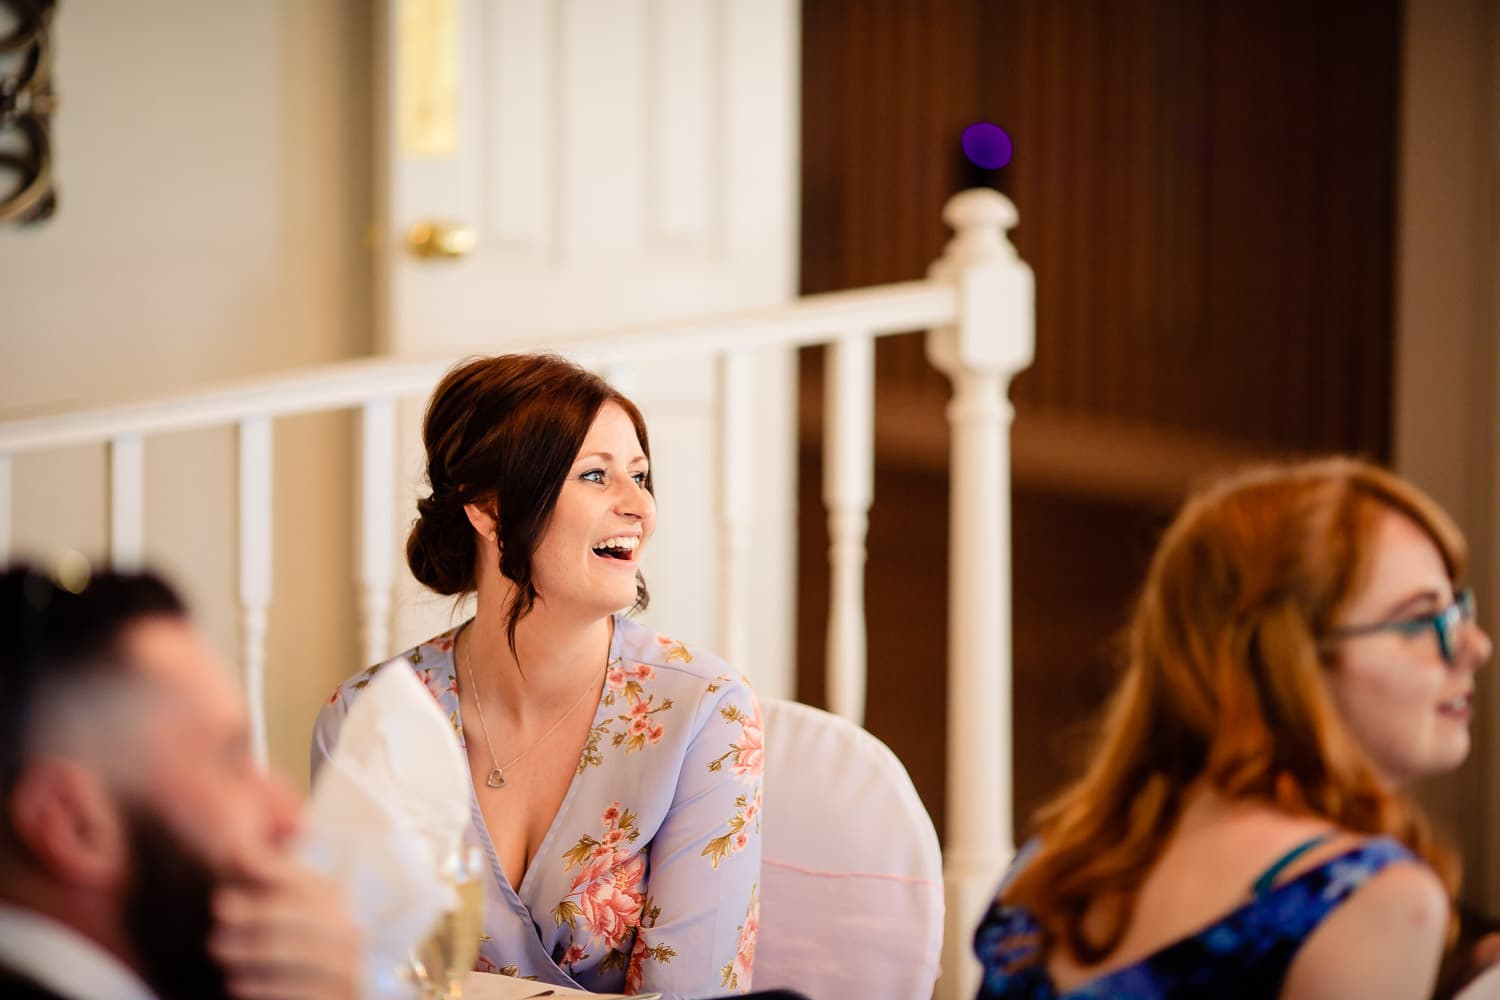 Warwick House Wedding Photography captures happy wedding guest during speeches